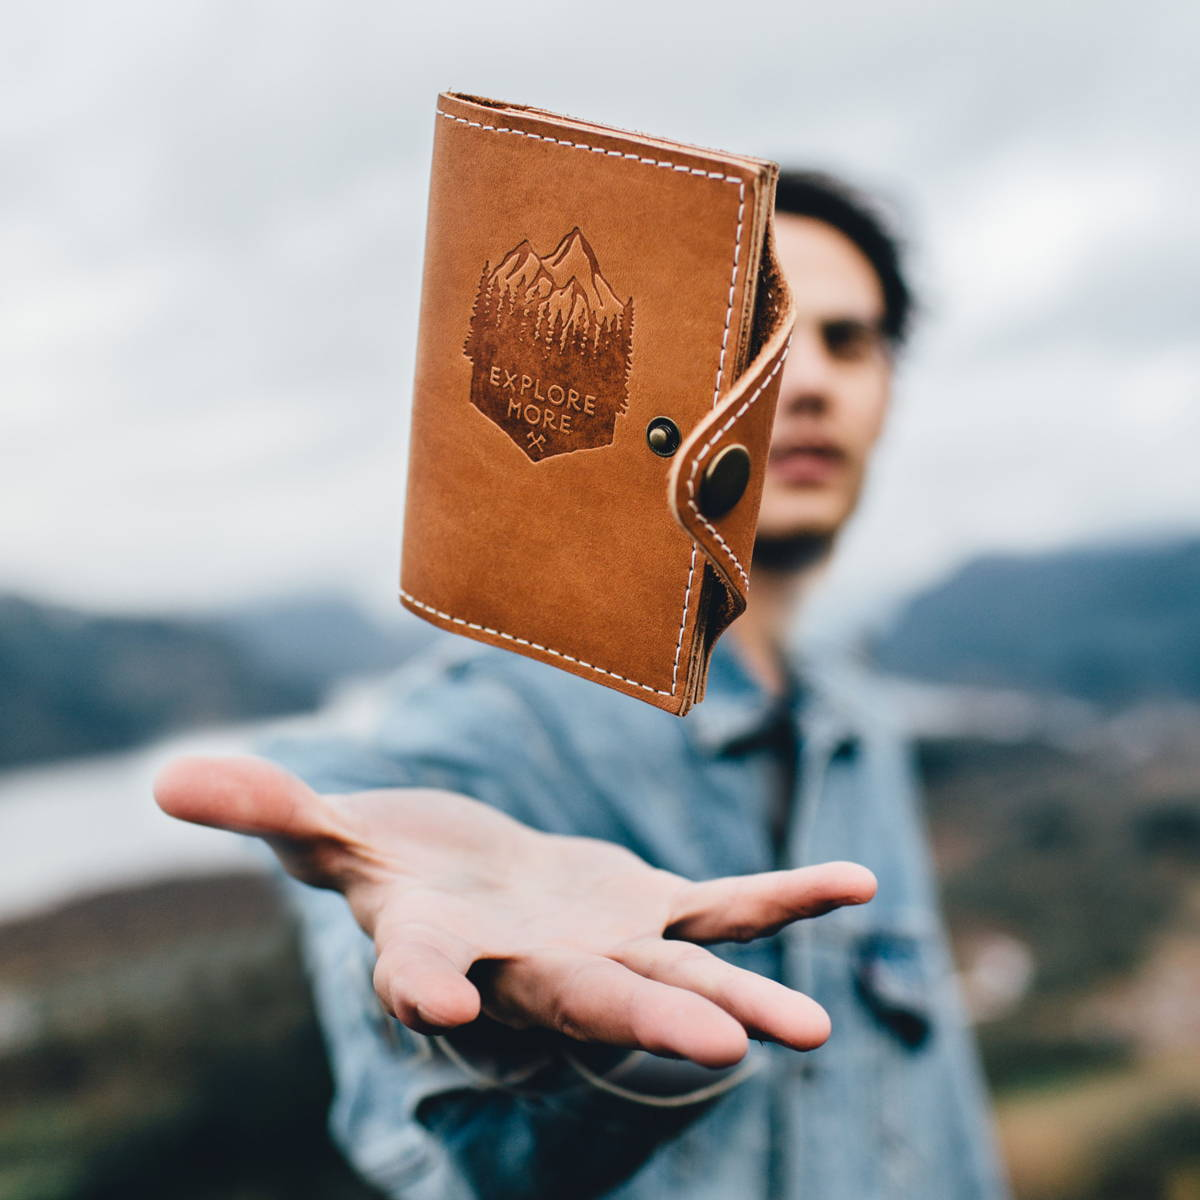 a man tossing a handmade leather journal into the air in front of a picturesque landscape scene